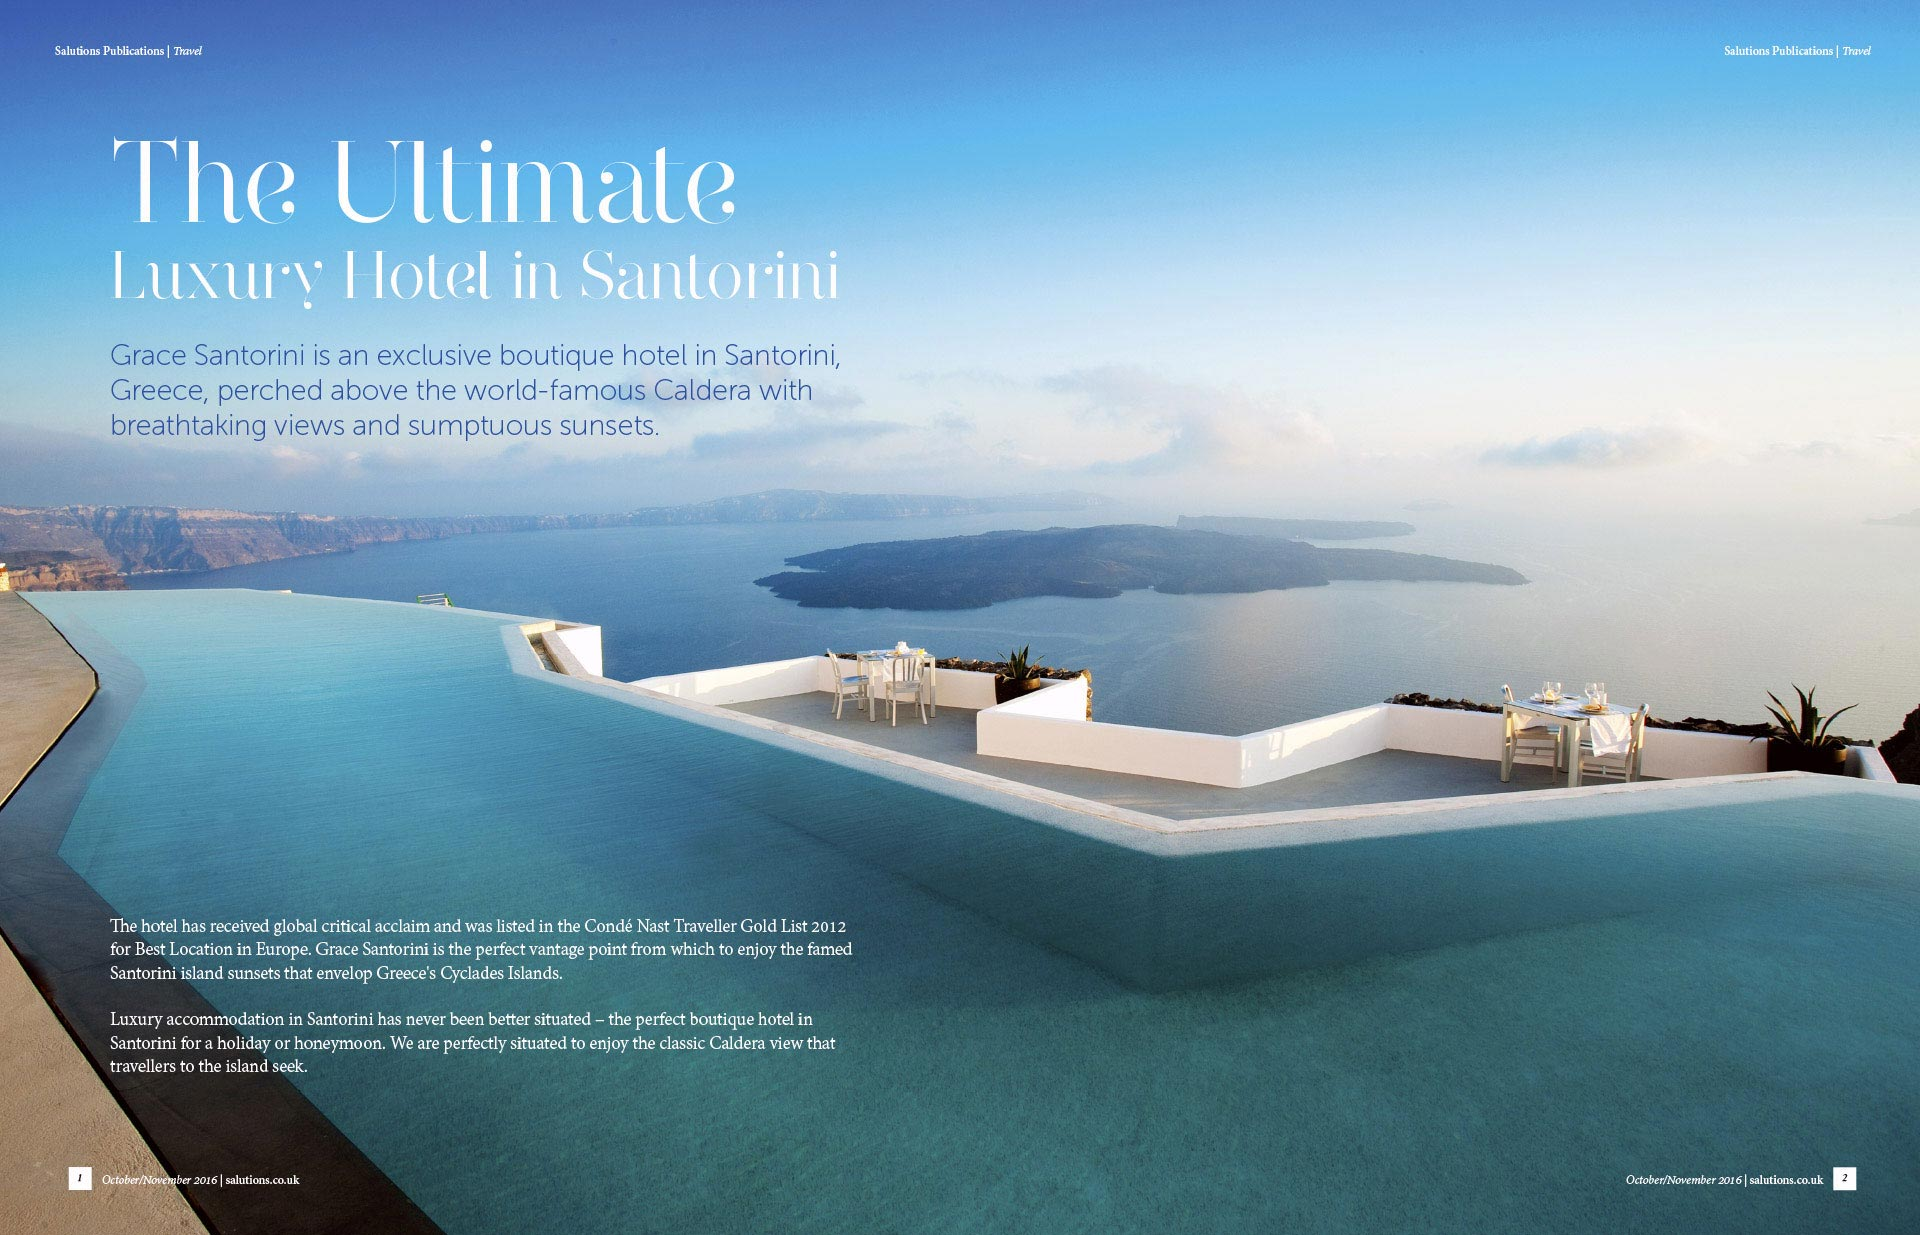 The ultimate Luxury Hotel in Santorini double page magazine spread. Layout design by Twistedgifted.